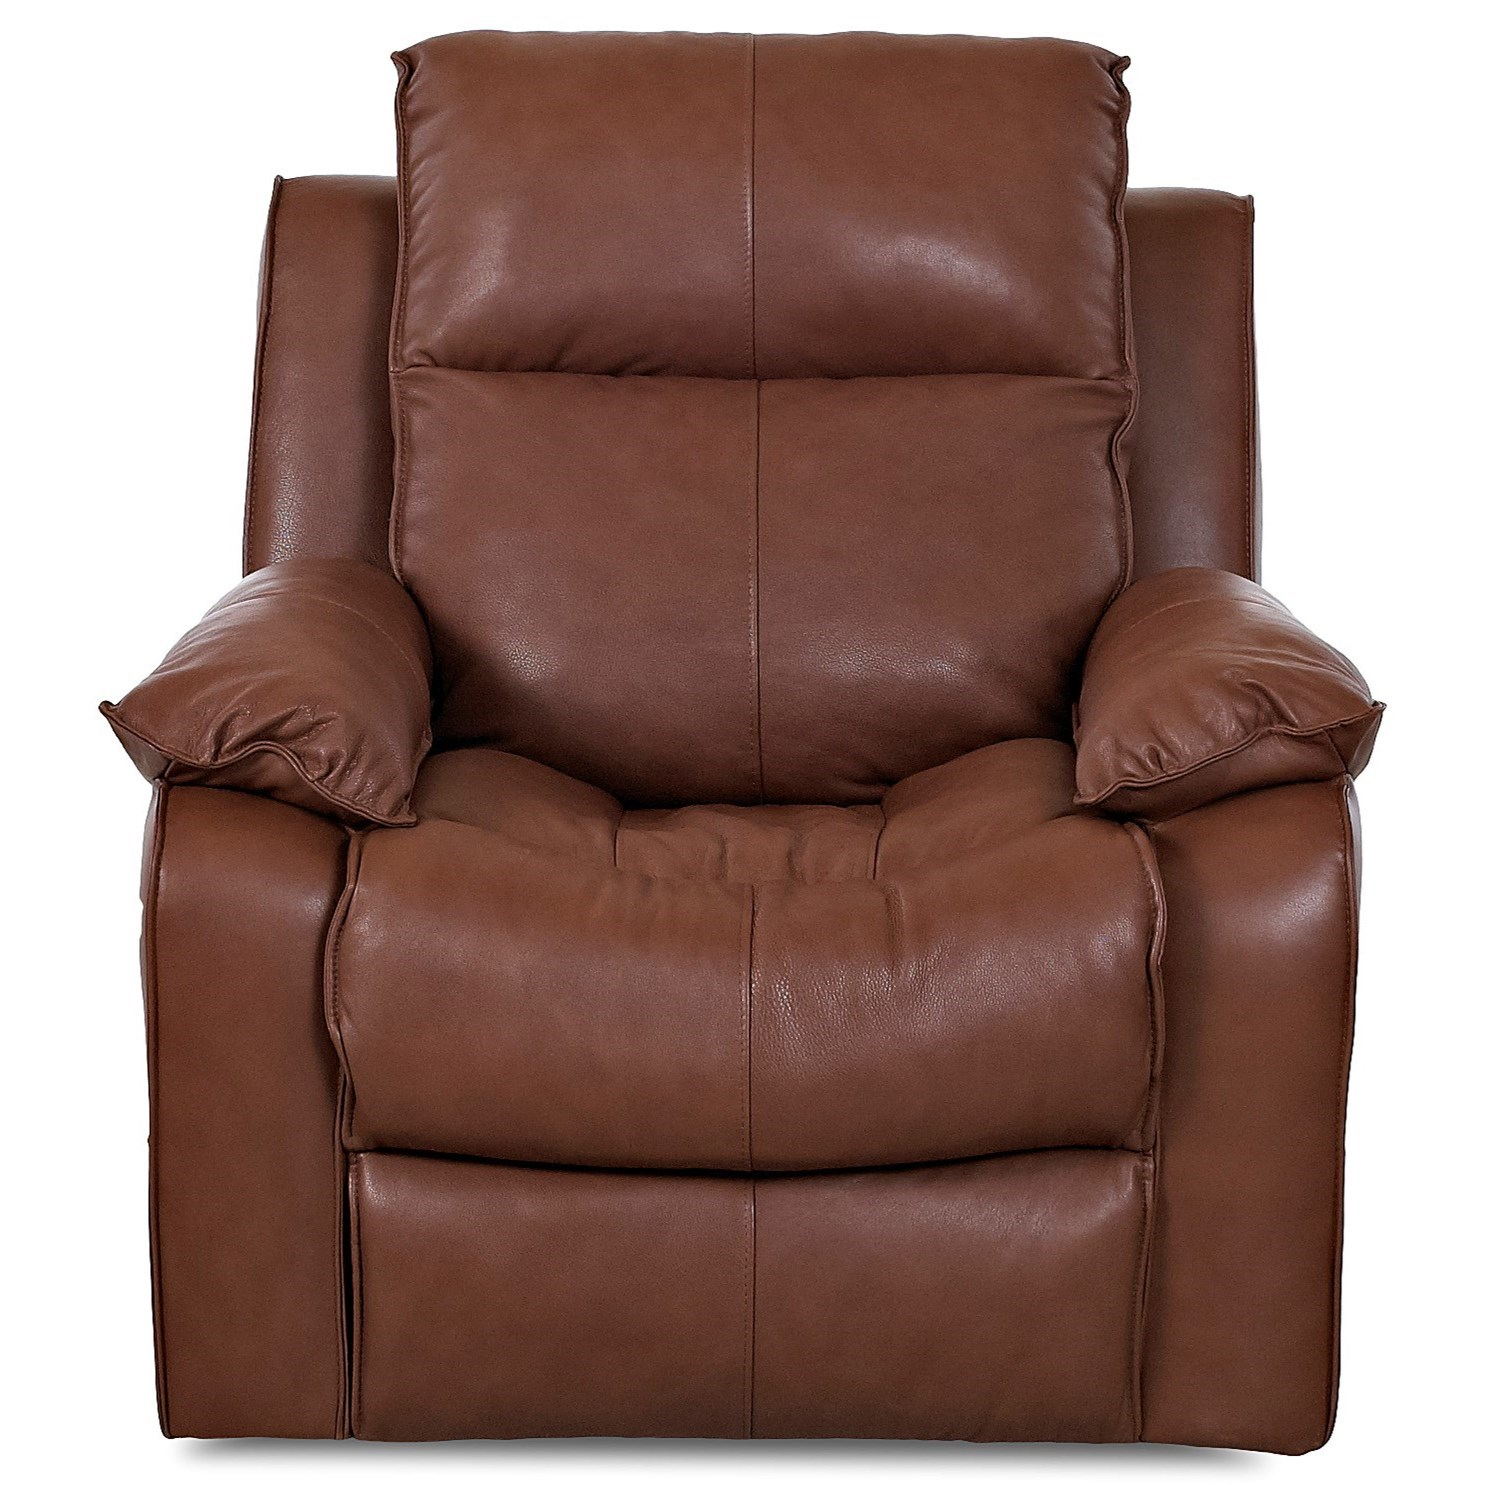 Castaway Casual Swivel Gliding Reclining Chair by Klaussner at Van Hill Furniture